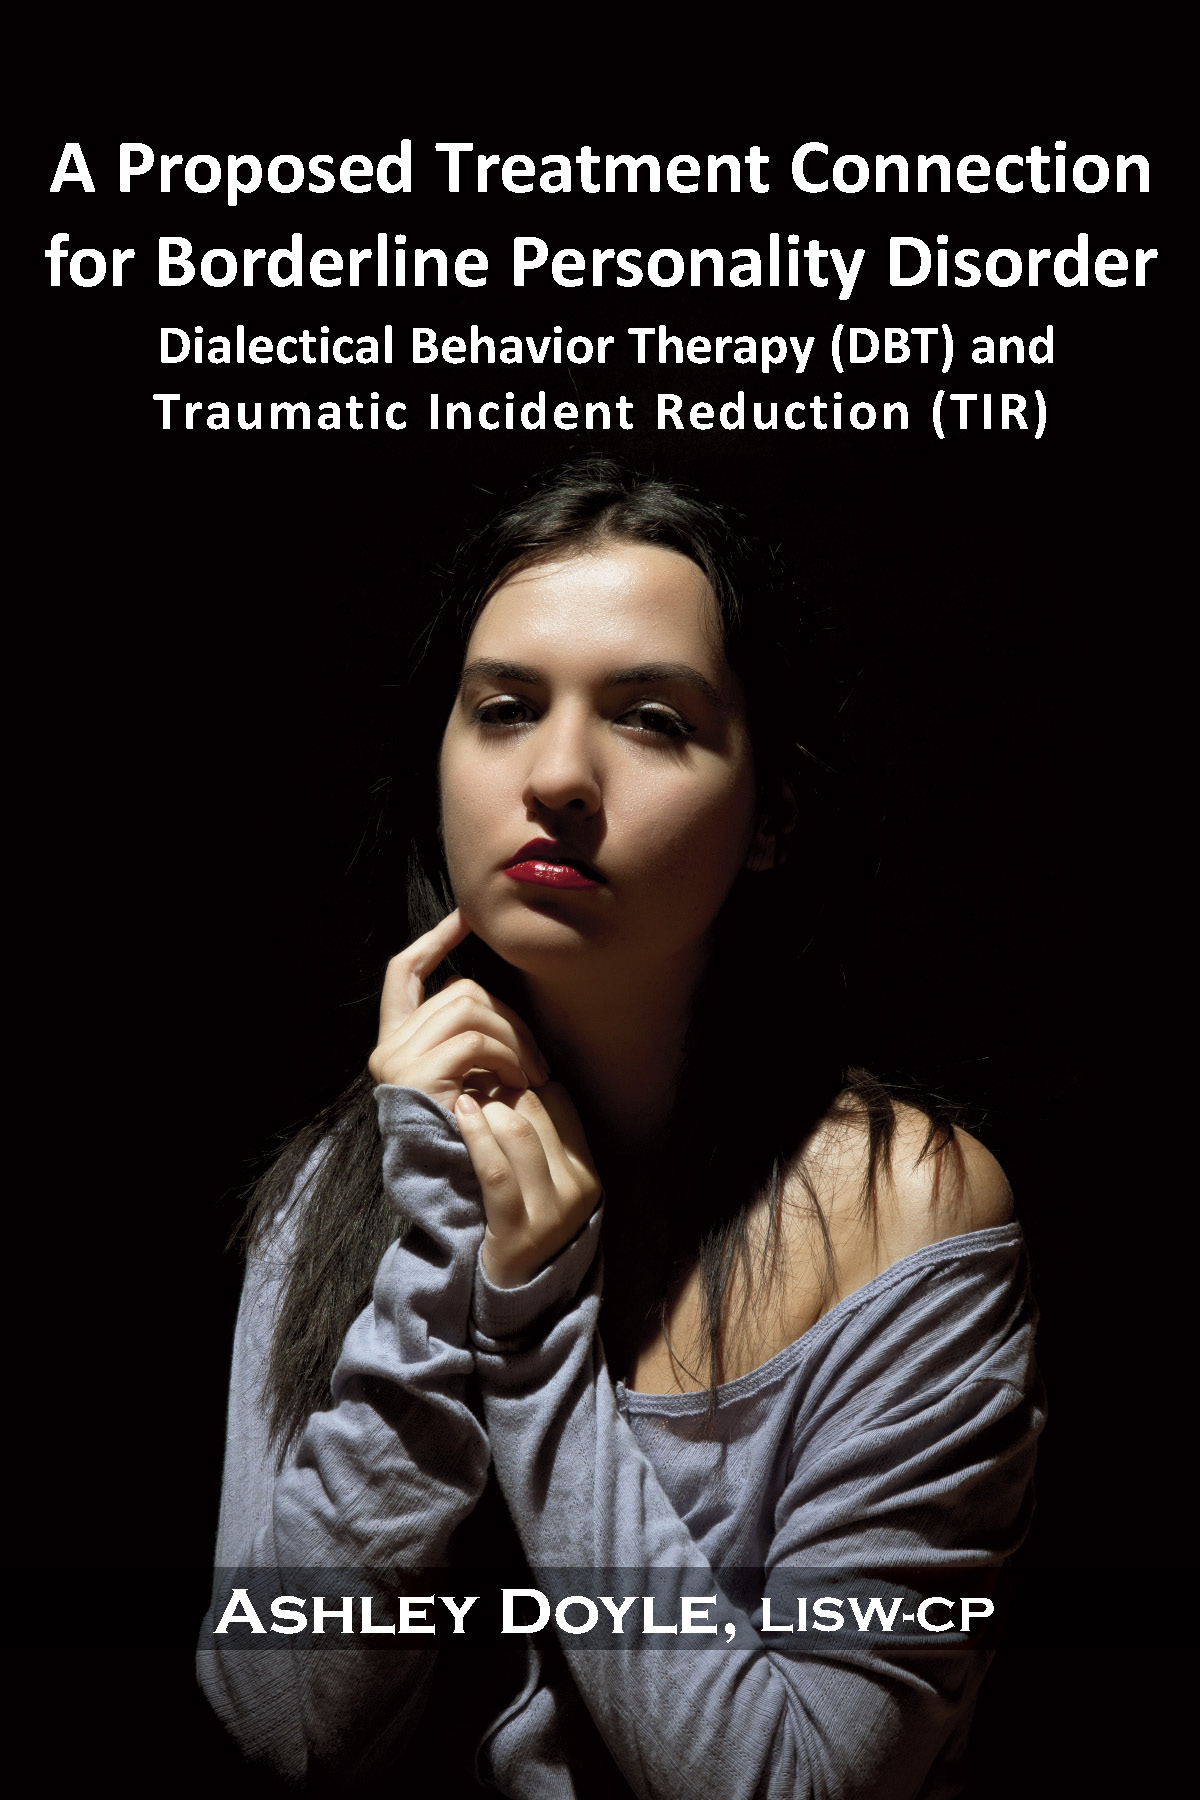 A Proposed Treatment Connection for Borderline Personality Disorder (BPD)